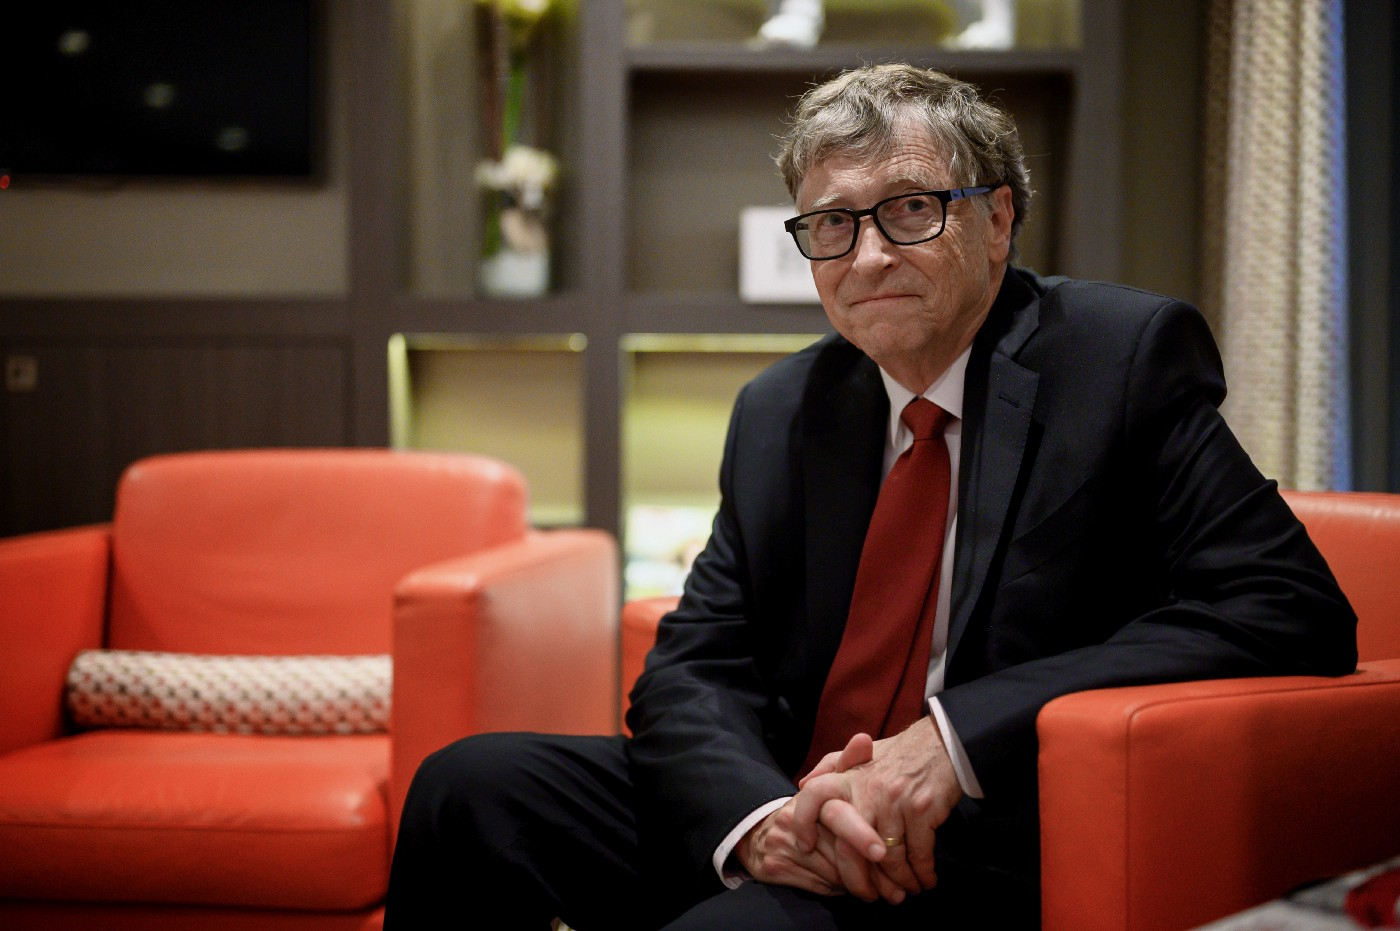 Bill Gates sits on a red armchair and poses for a picture during the funding conference for the Global Fund to Fight AIDS.